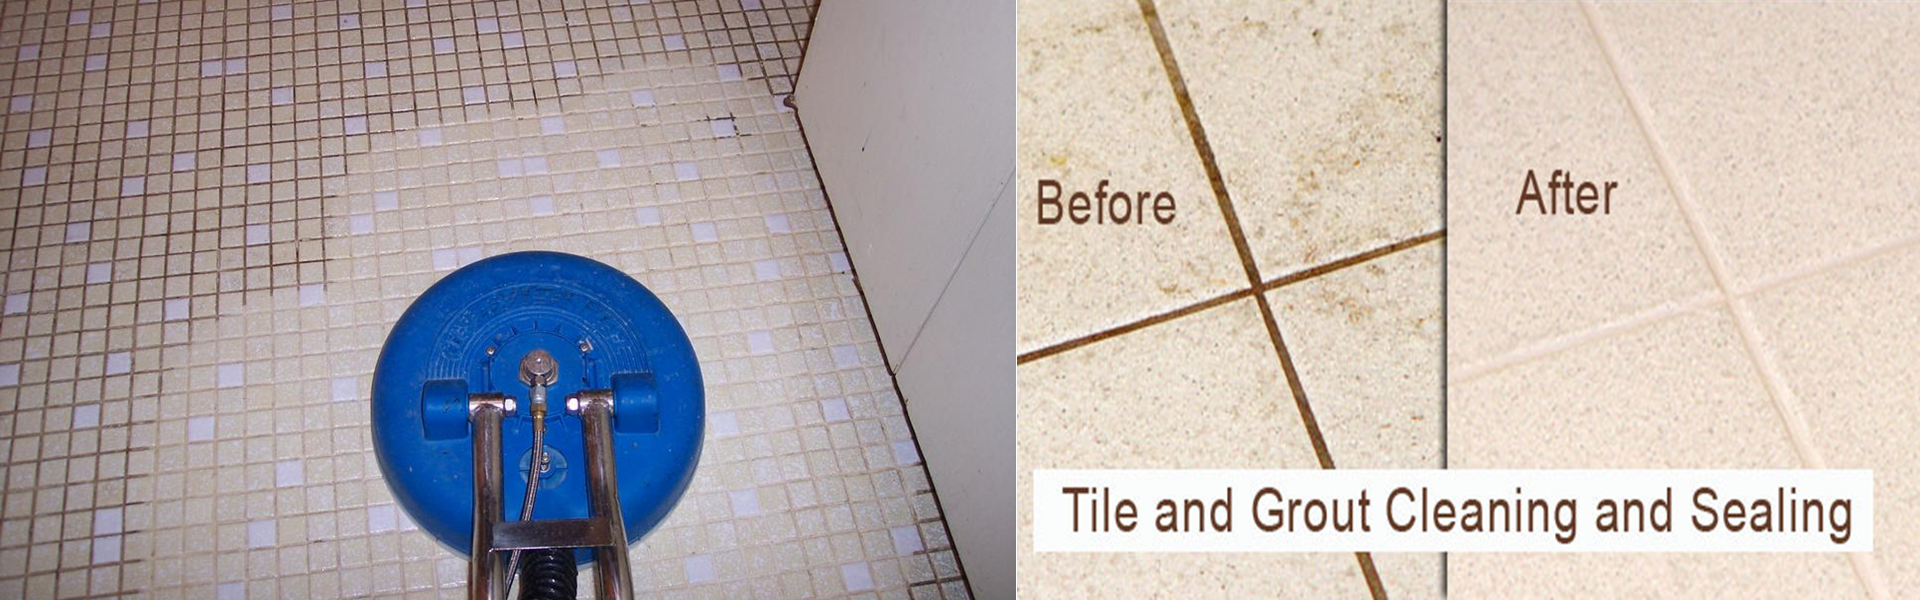 Best carpet tile and stone cleaner in pearland previousnext dailygadgetfo Images